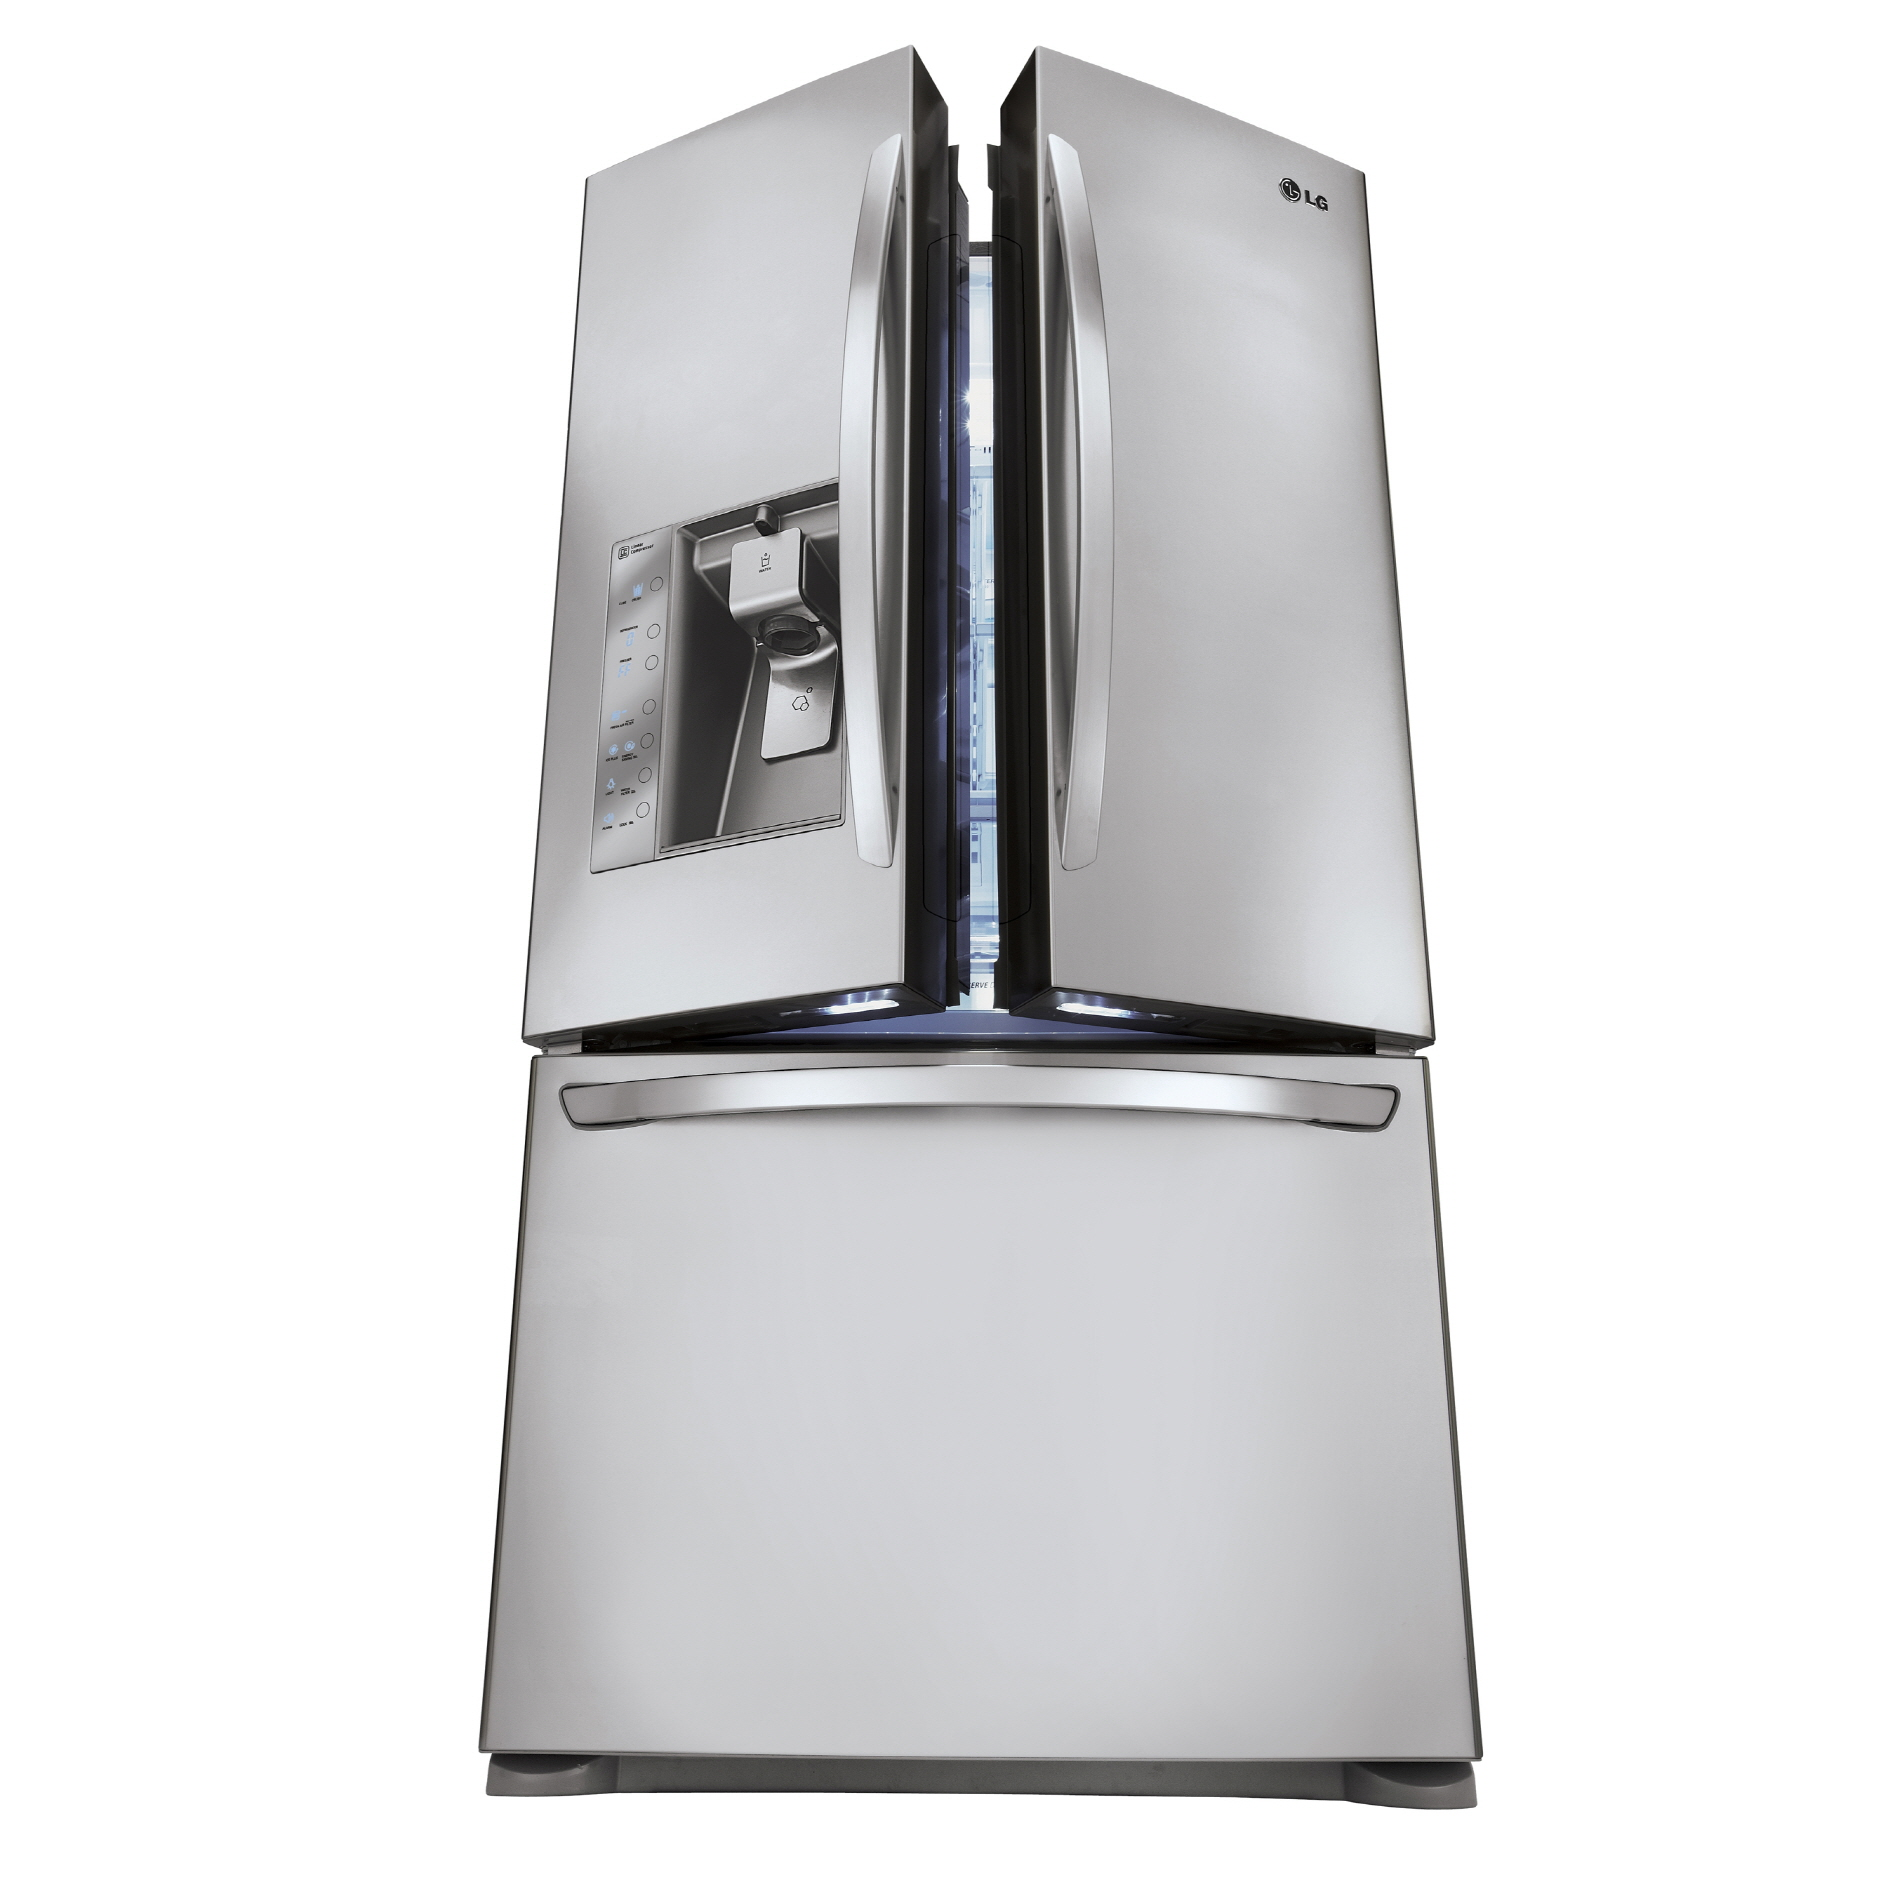 A picture of the LG French-door refrigerator (model LFX31935) opened up at an angle of approximately 15 degrees